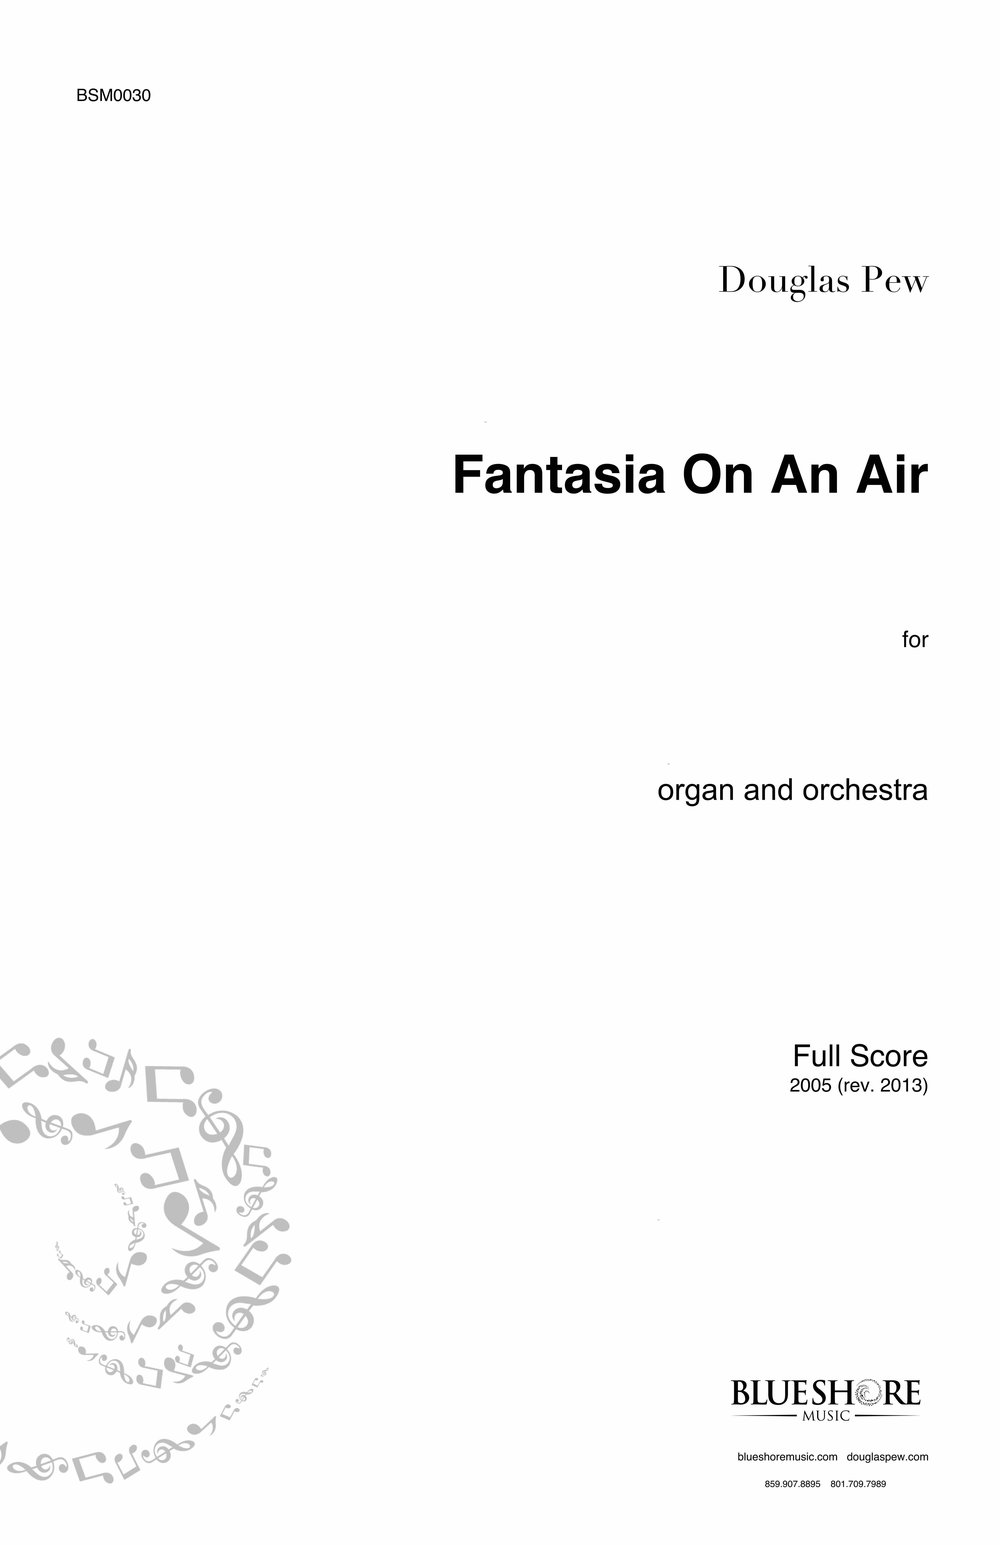 Fantasia On An Air, for Organ and Orchestra